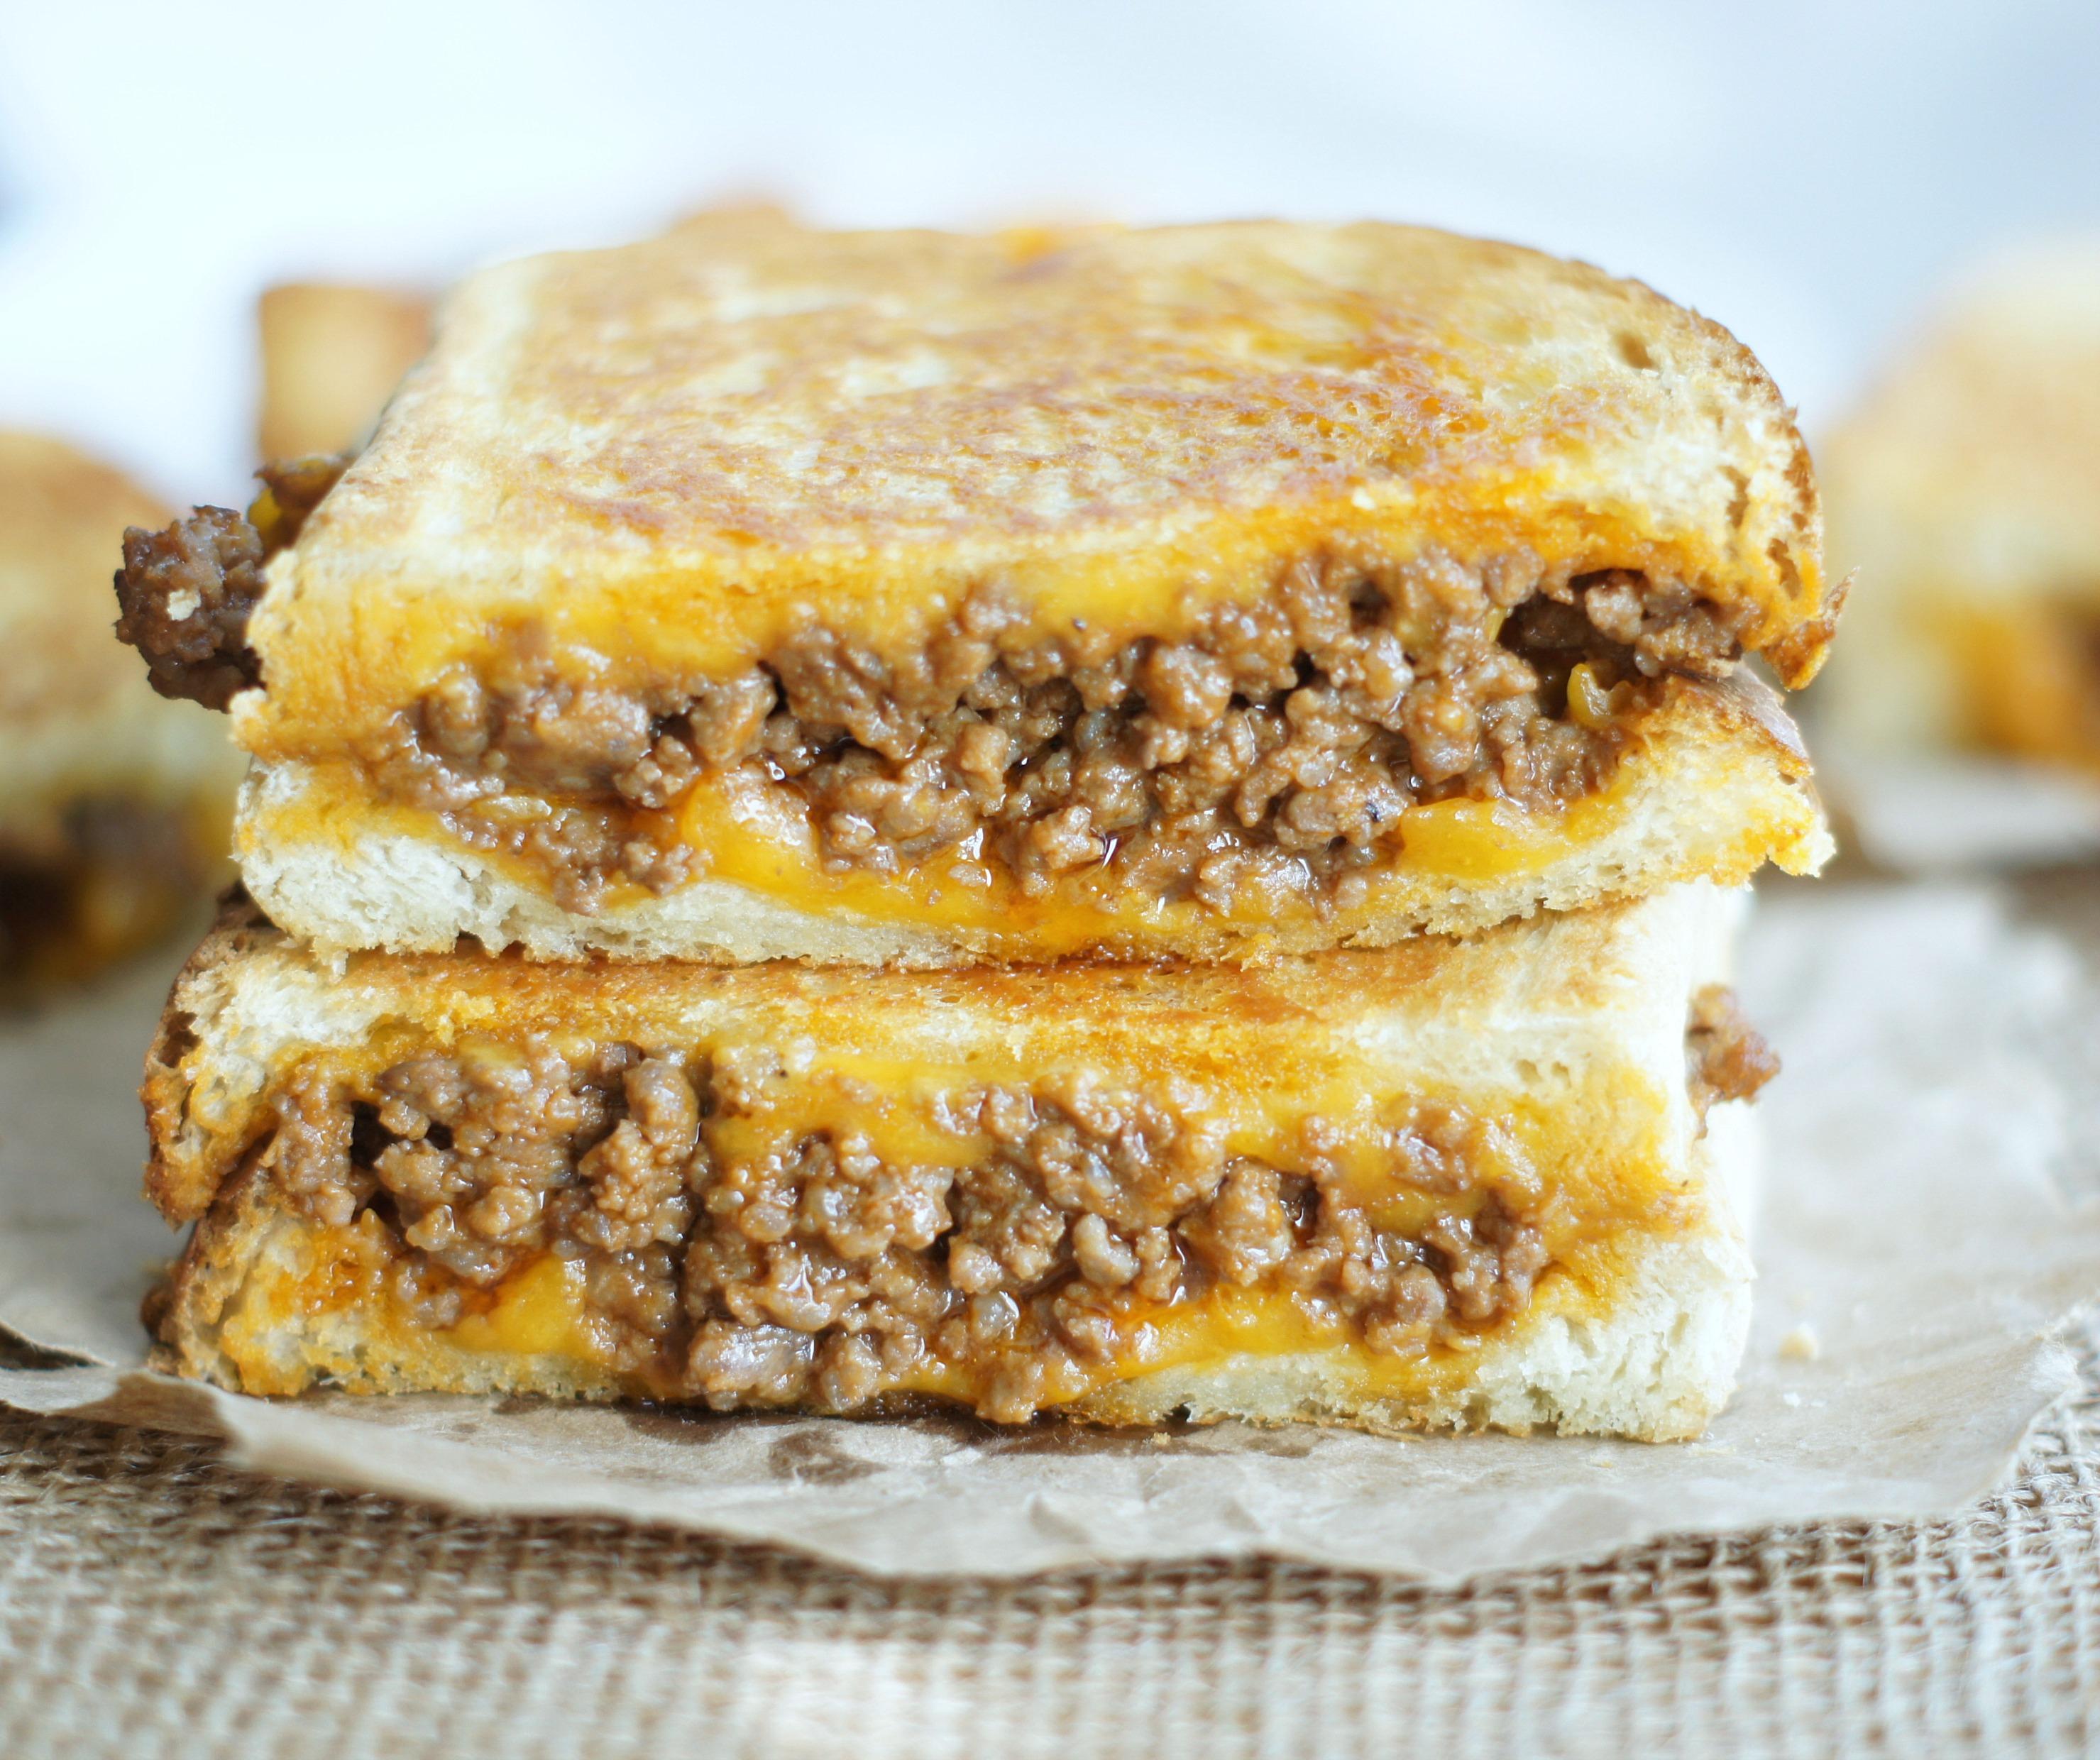 sonic 50 cent grilled cheese